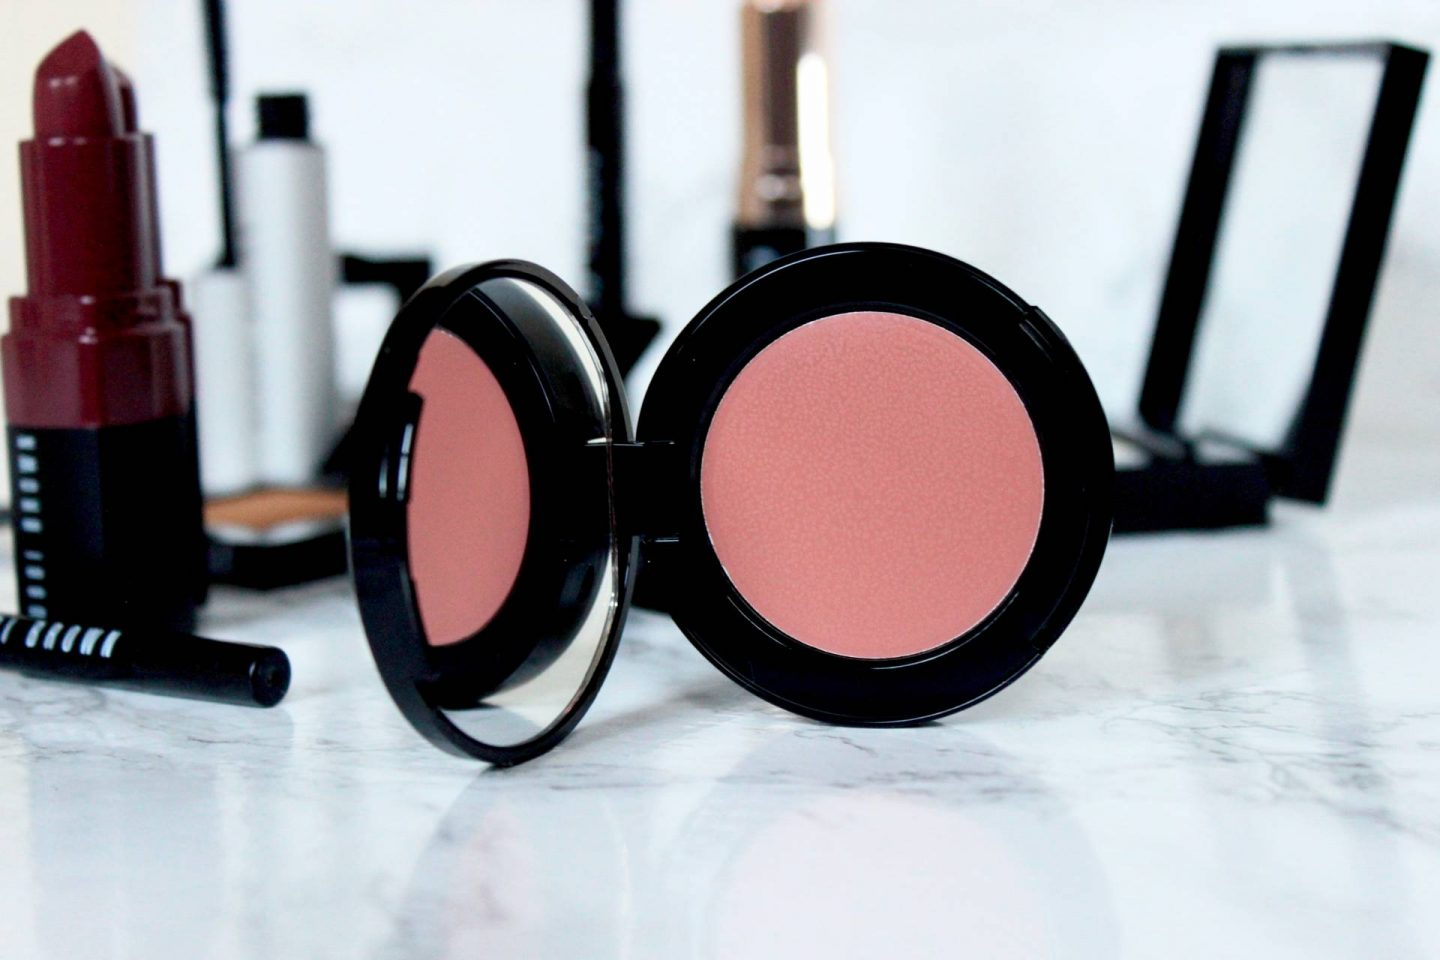 Bobbi Brown Pot Rouge for Lips and Cheeks in Uber Beige